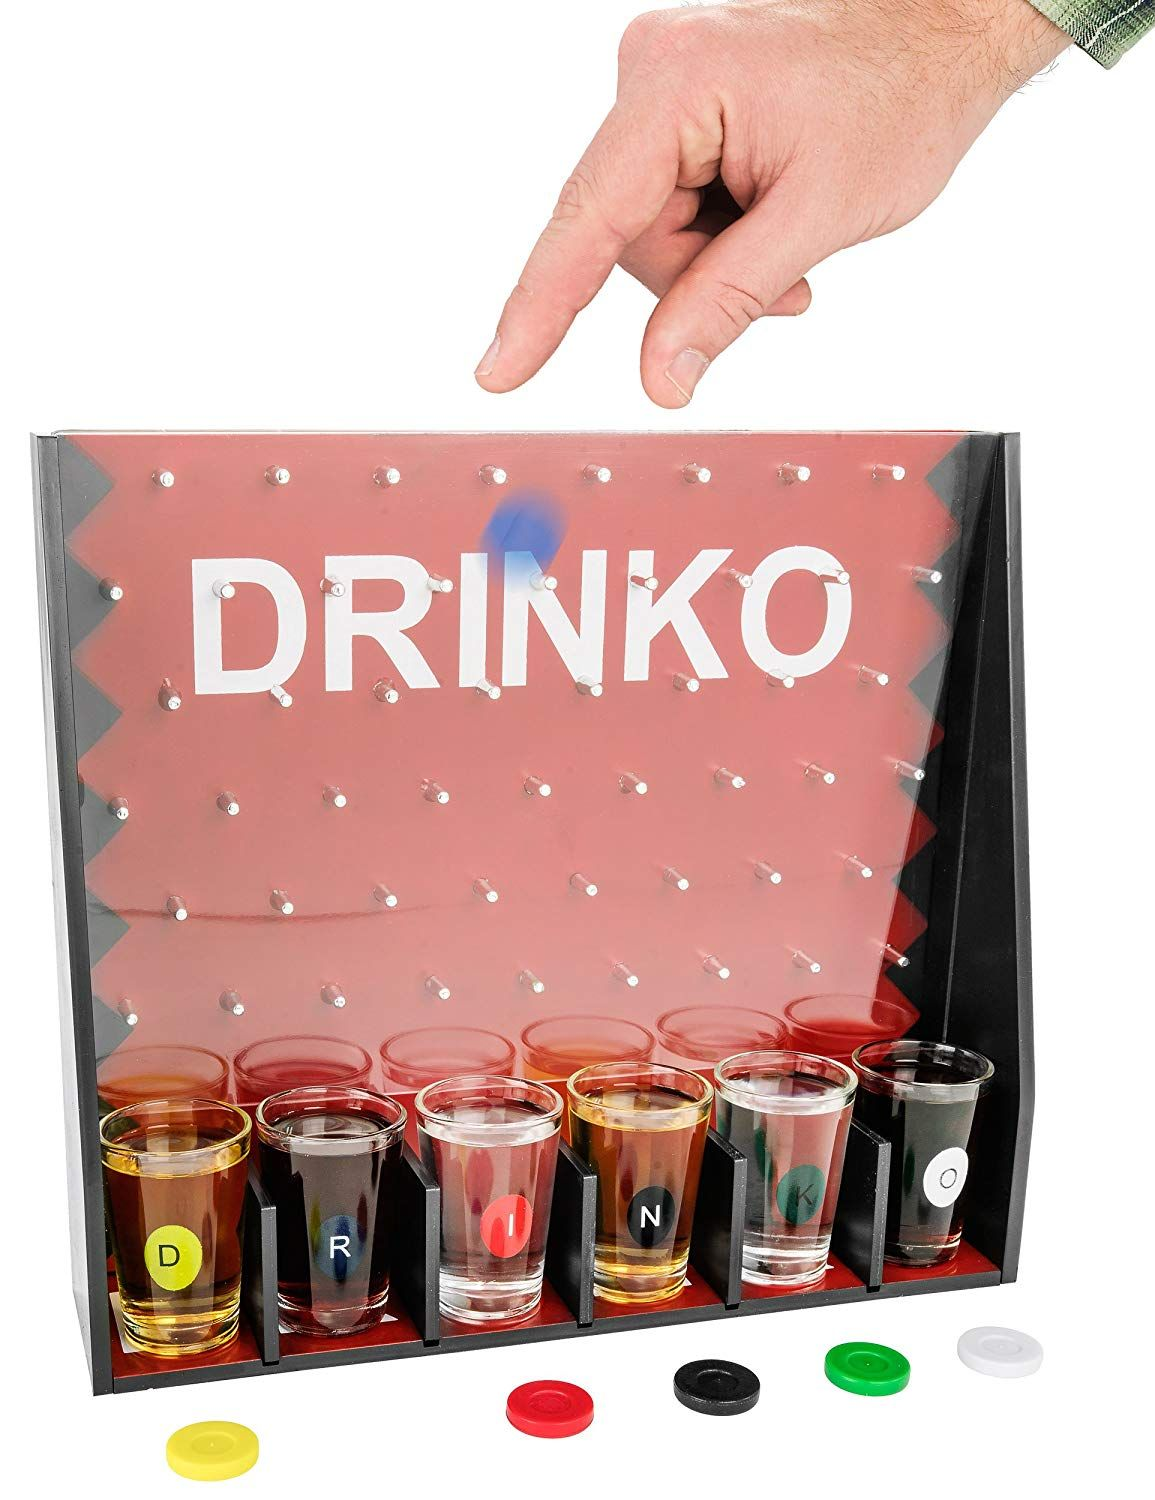 Drinko shot glass drinking game drinking games alcohol